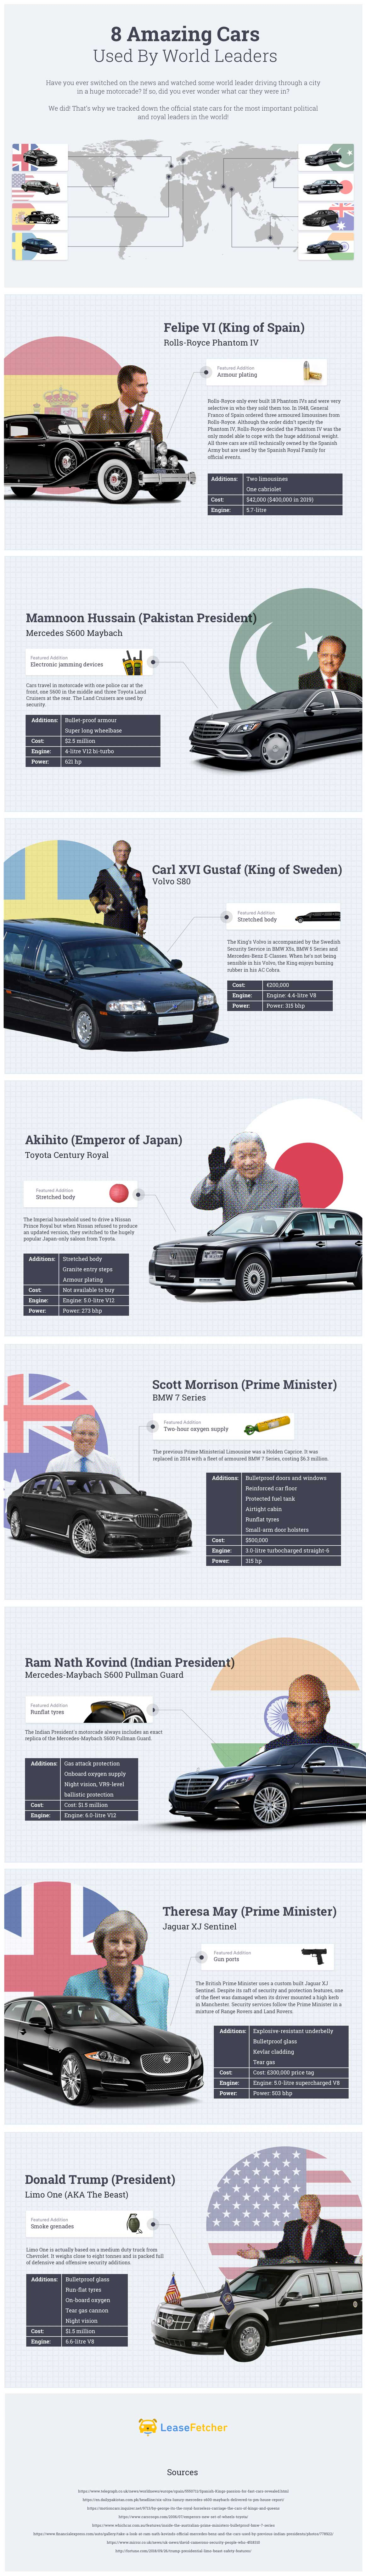 8 Amazing Cars Used by World Leaders from LeaseFetcher